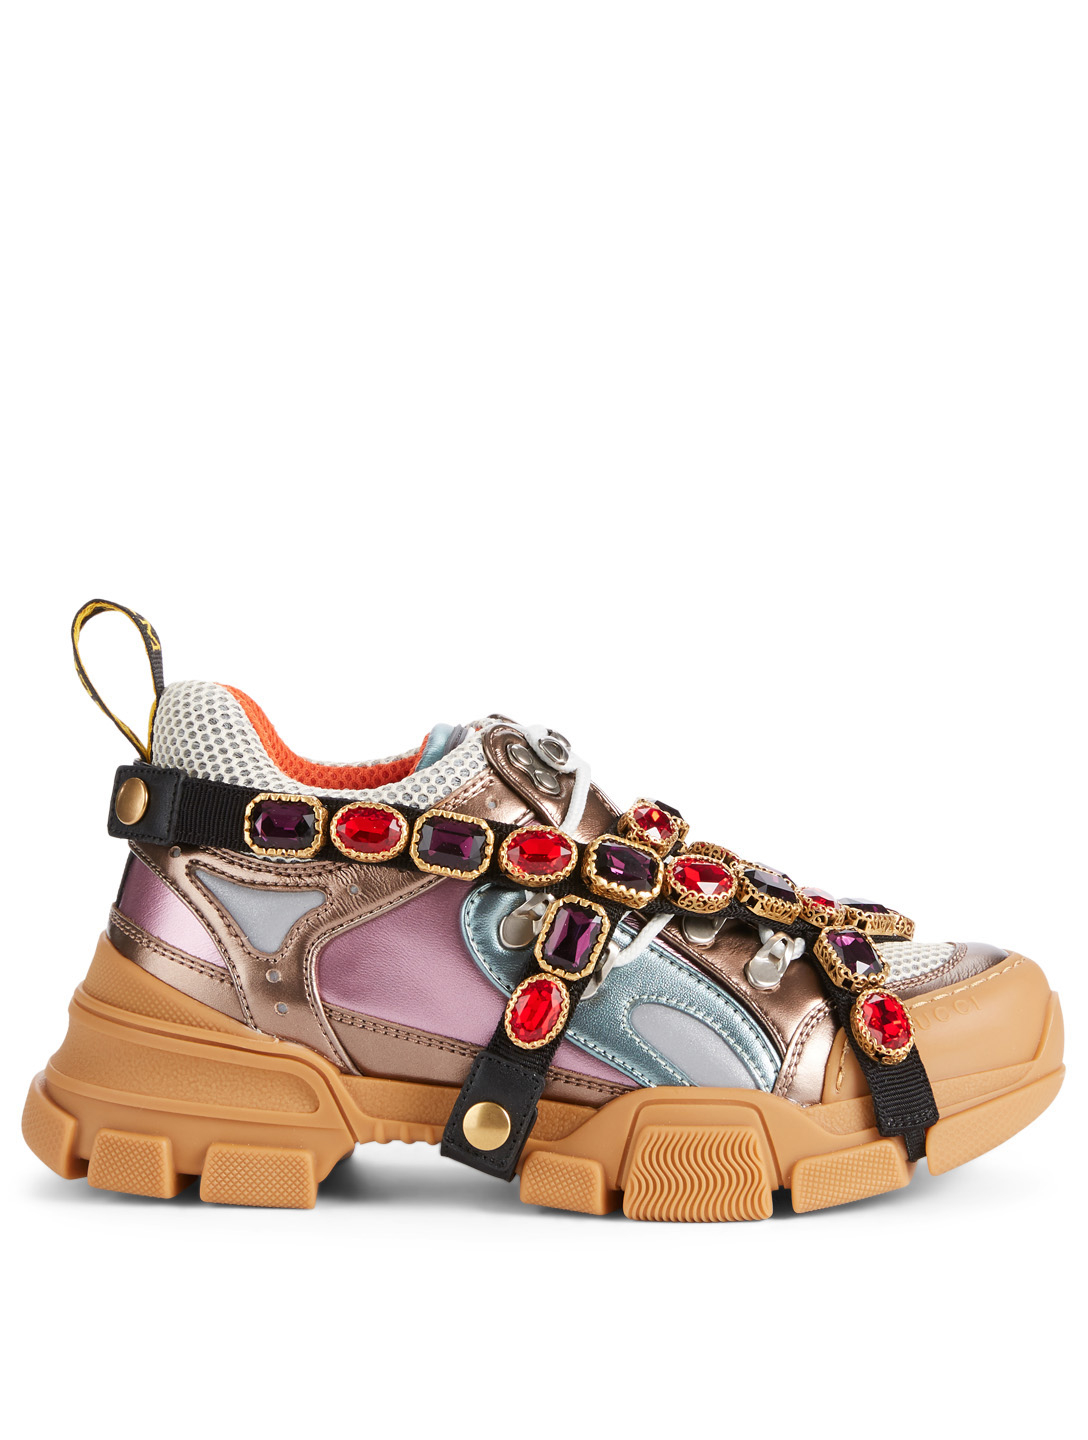 GUCCI Flashtrek Hiker Sneakers With Removable Crystal Straps Women's Multi